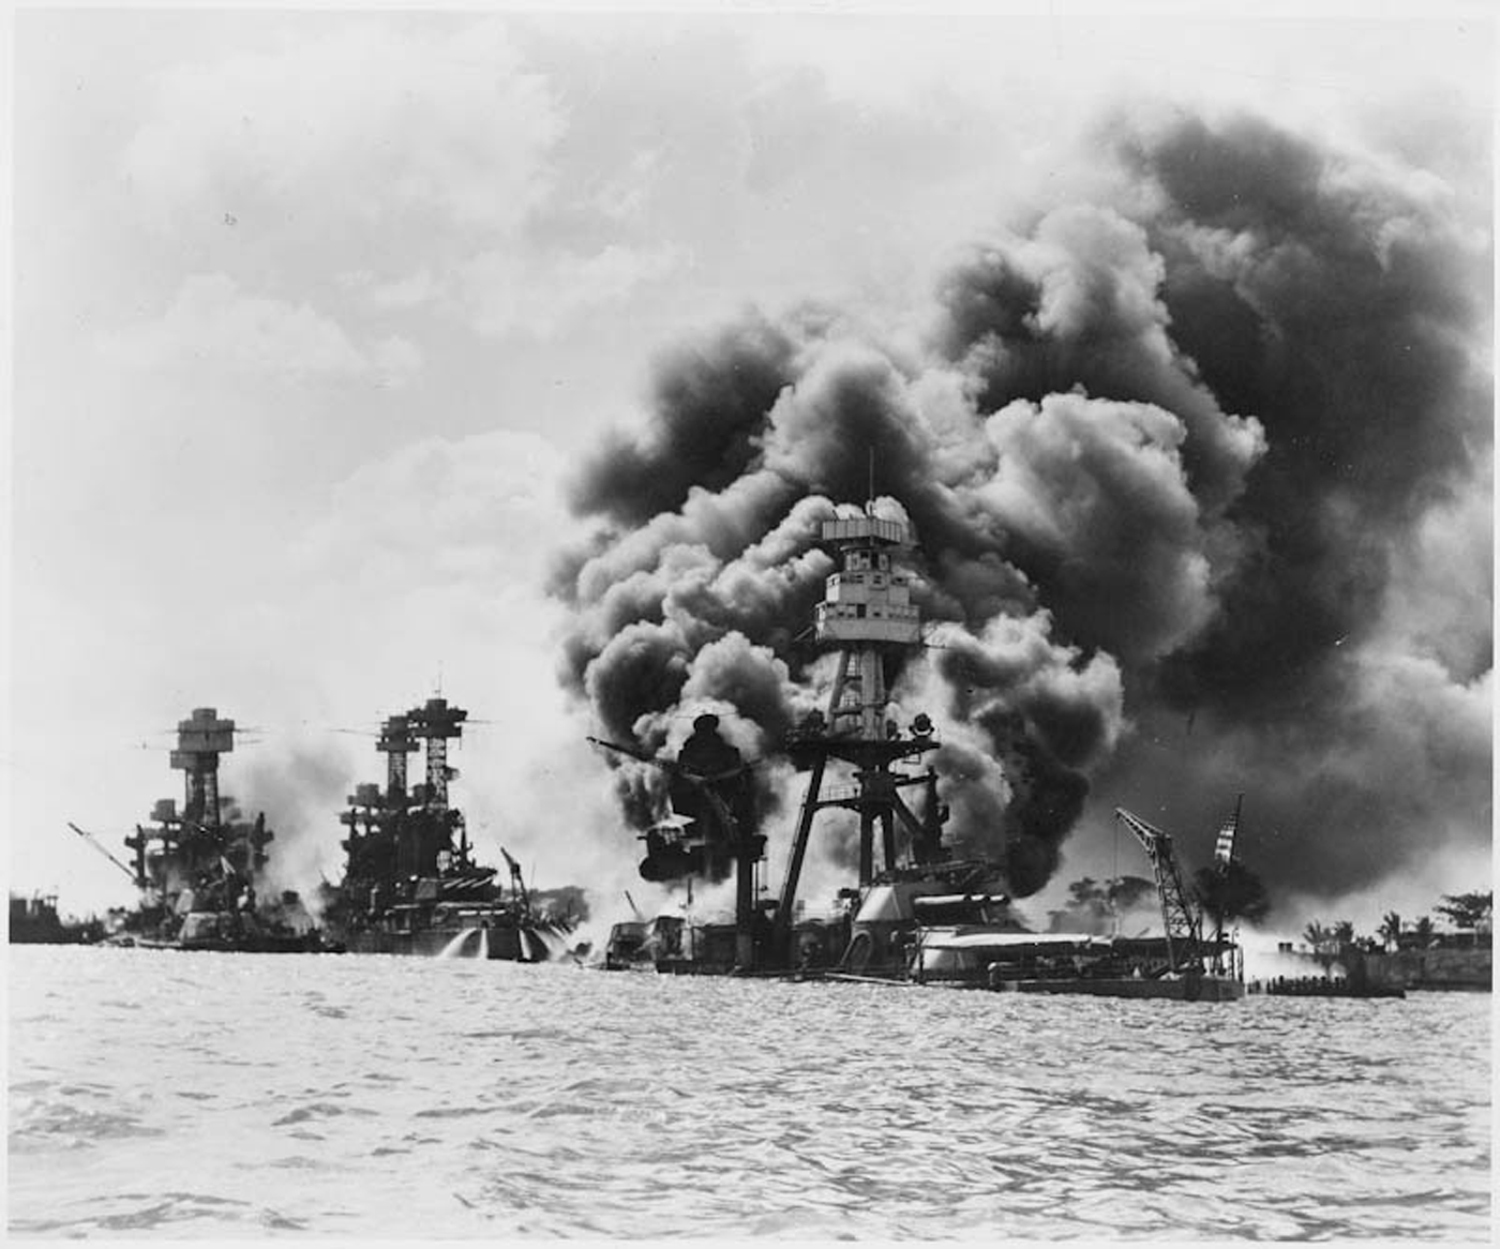 The USS West Virginia is in the far left of the picture